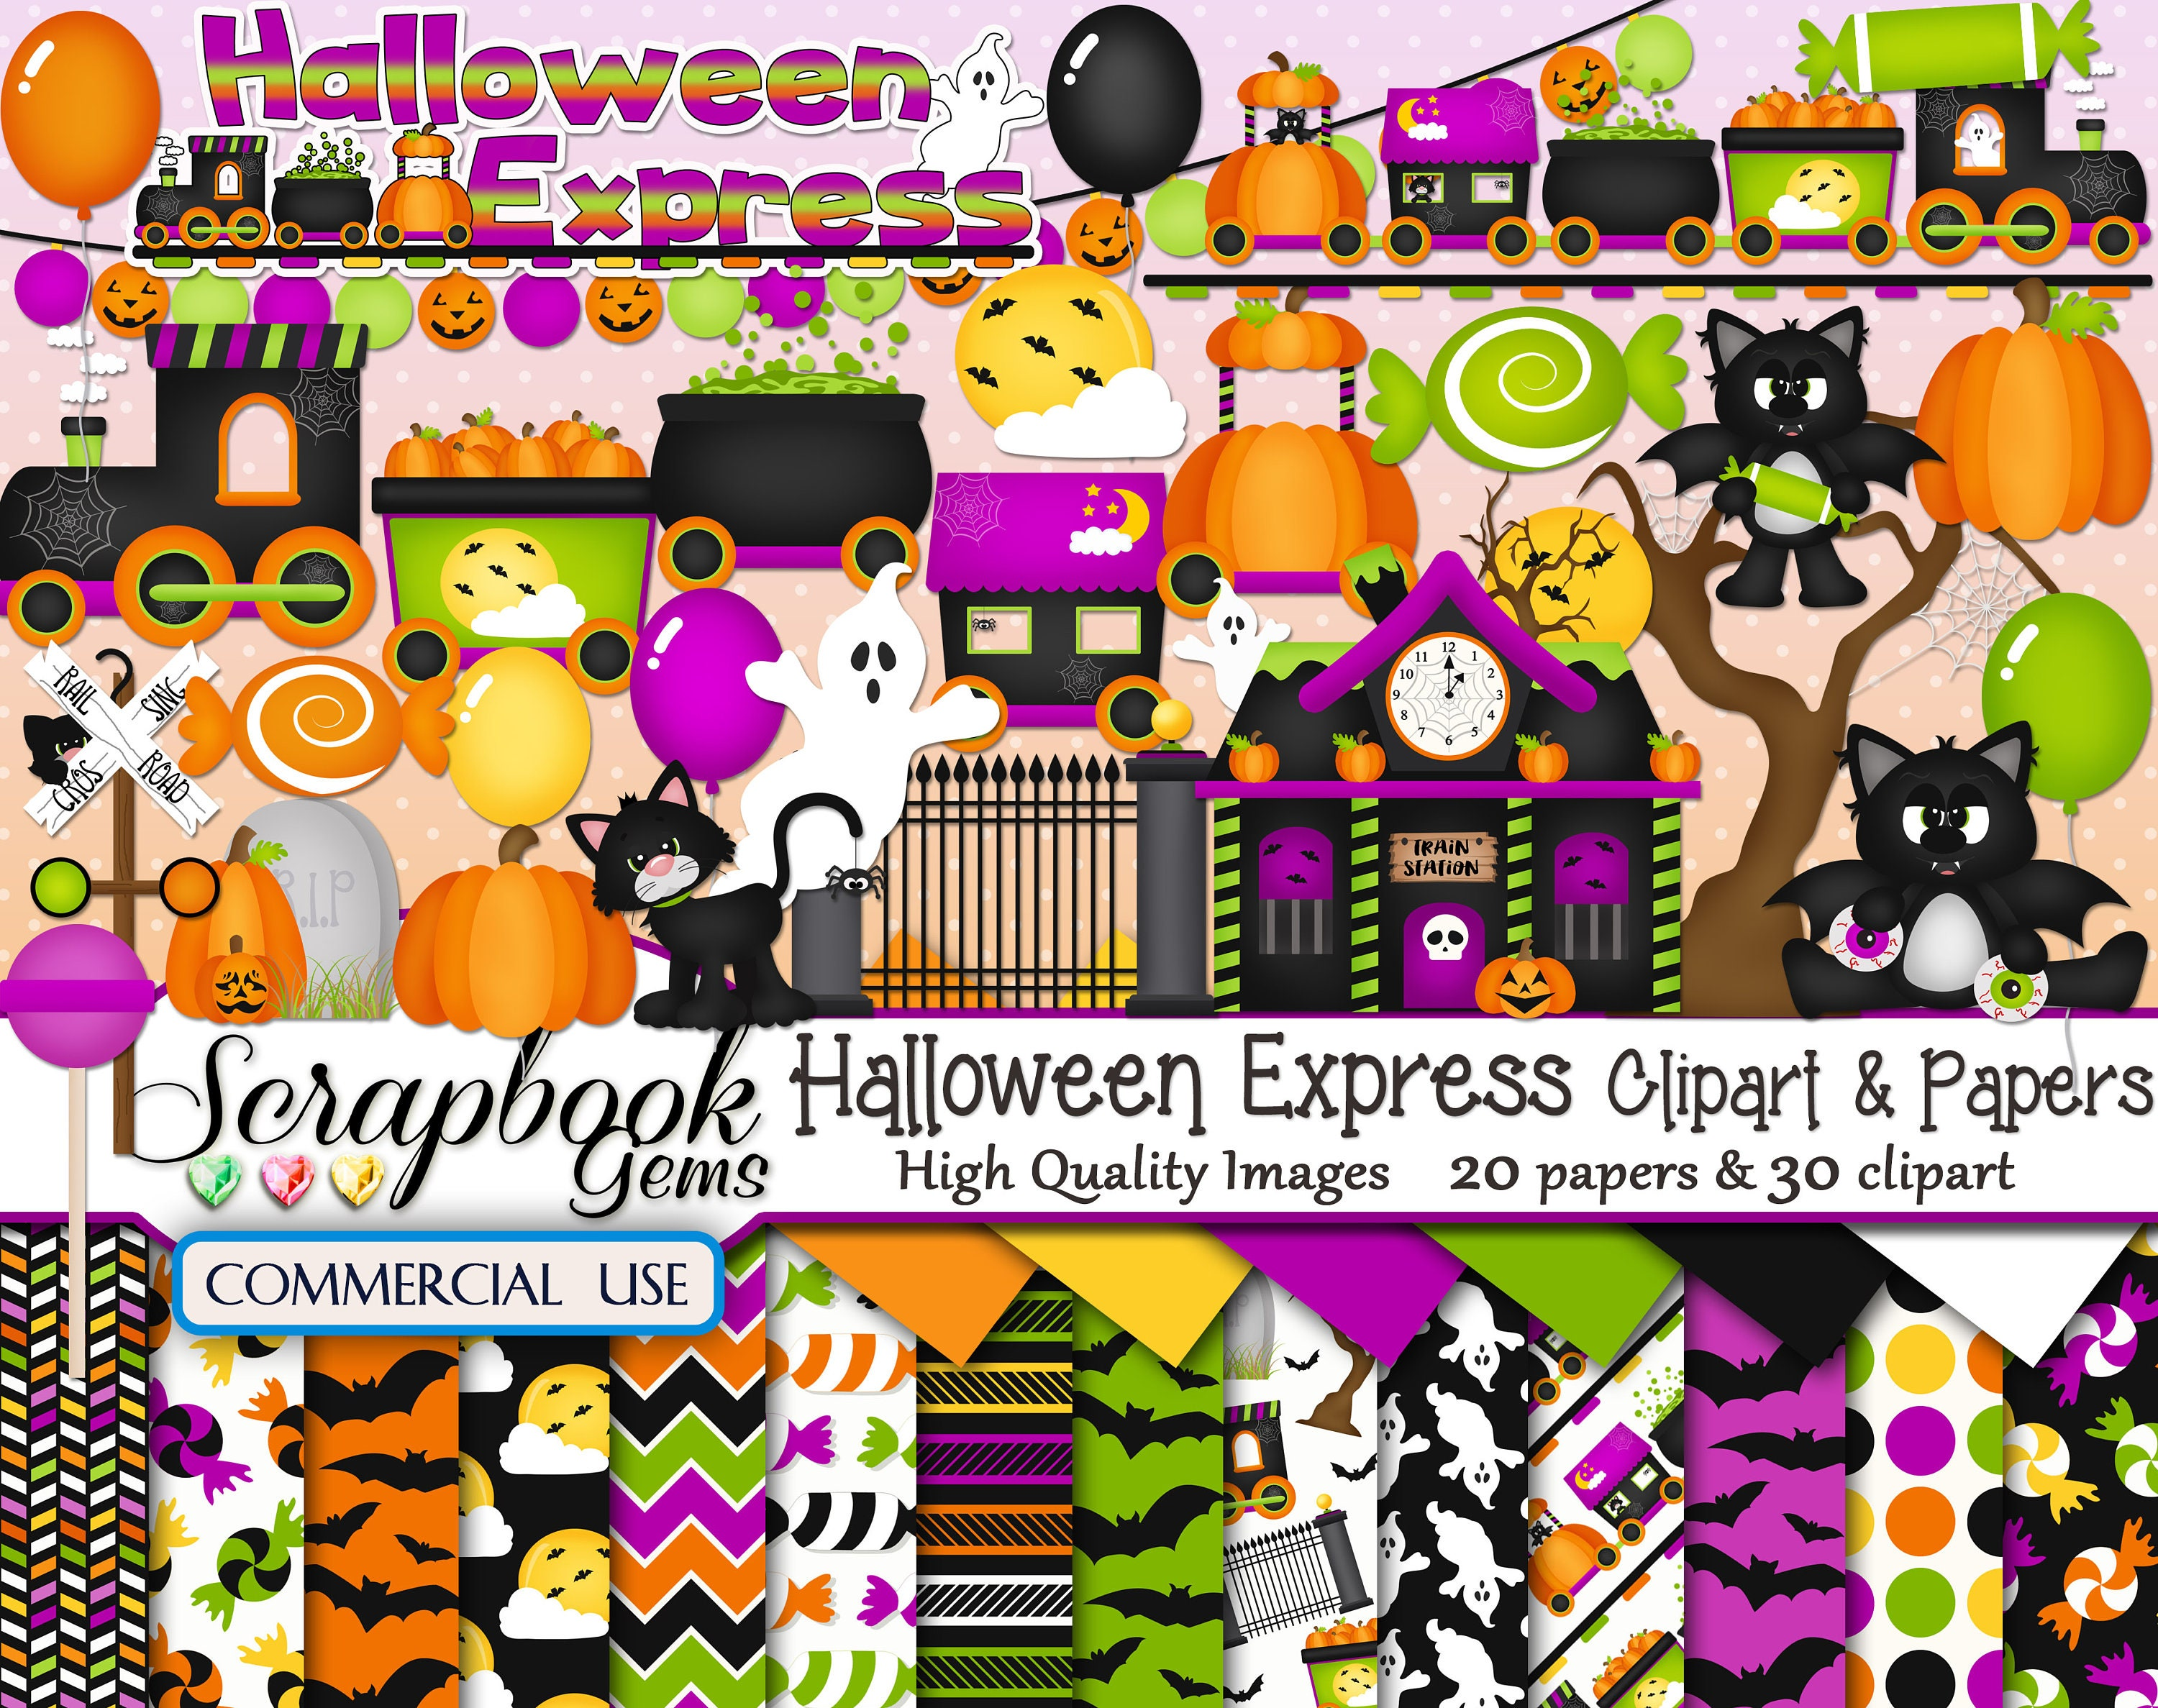 halloween express clipart & papers kit 30 png clipart files | etsy